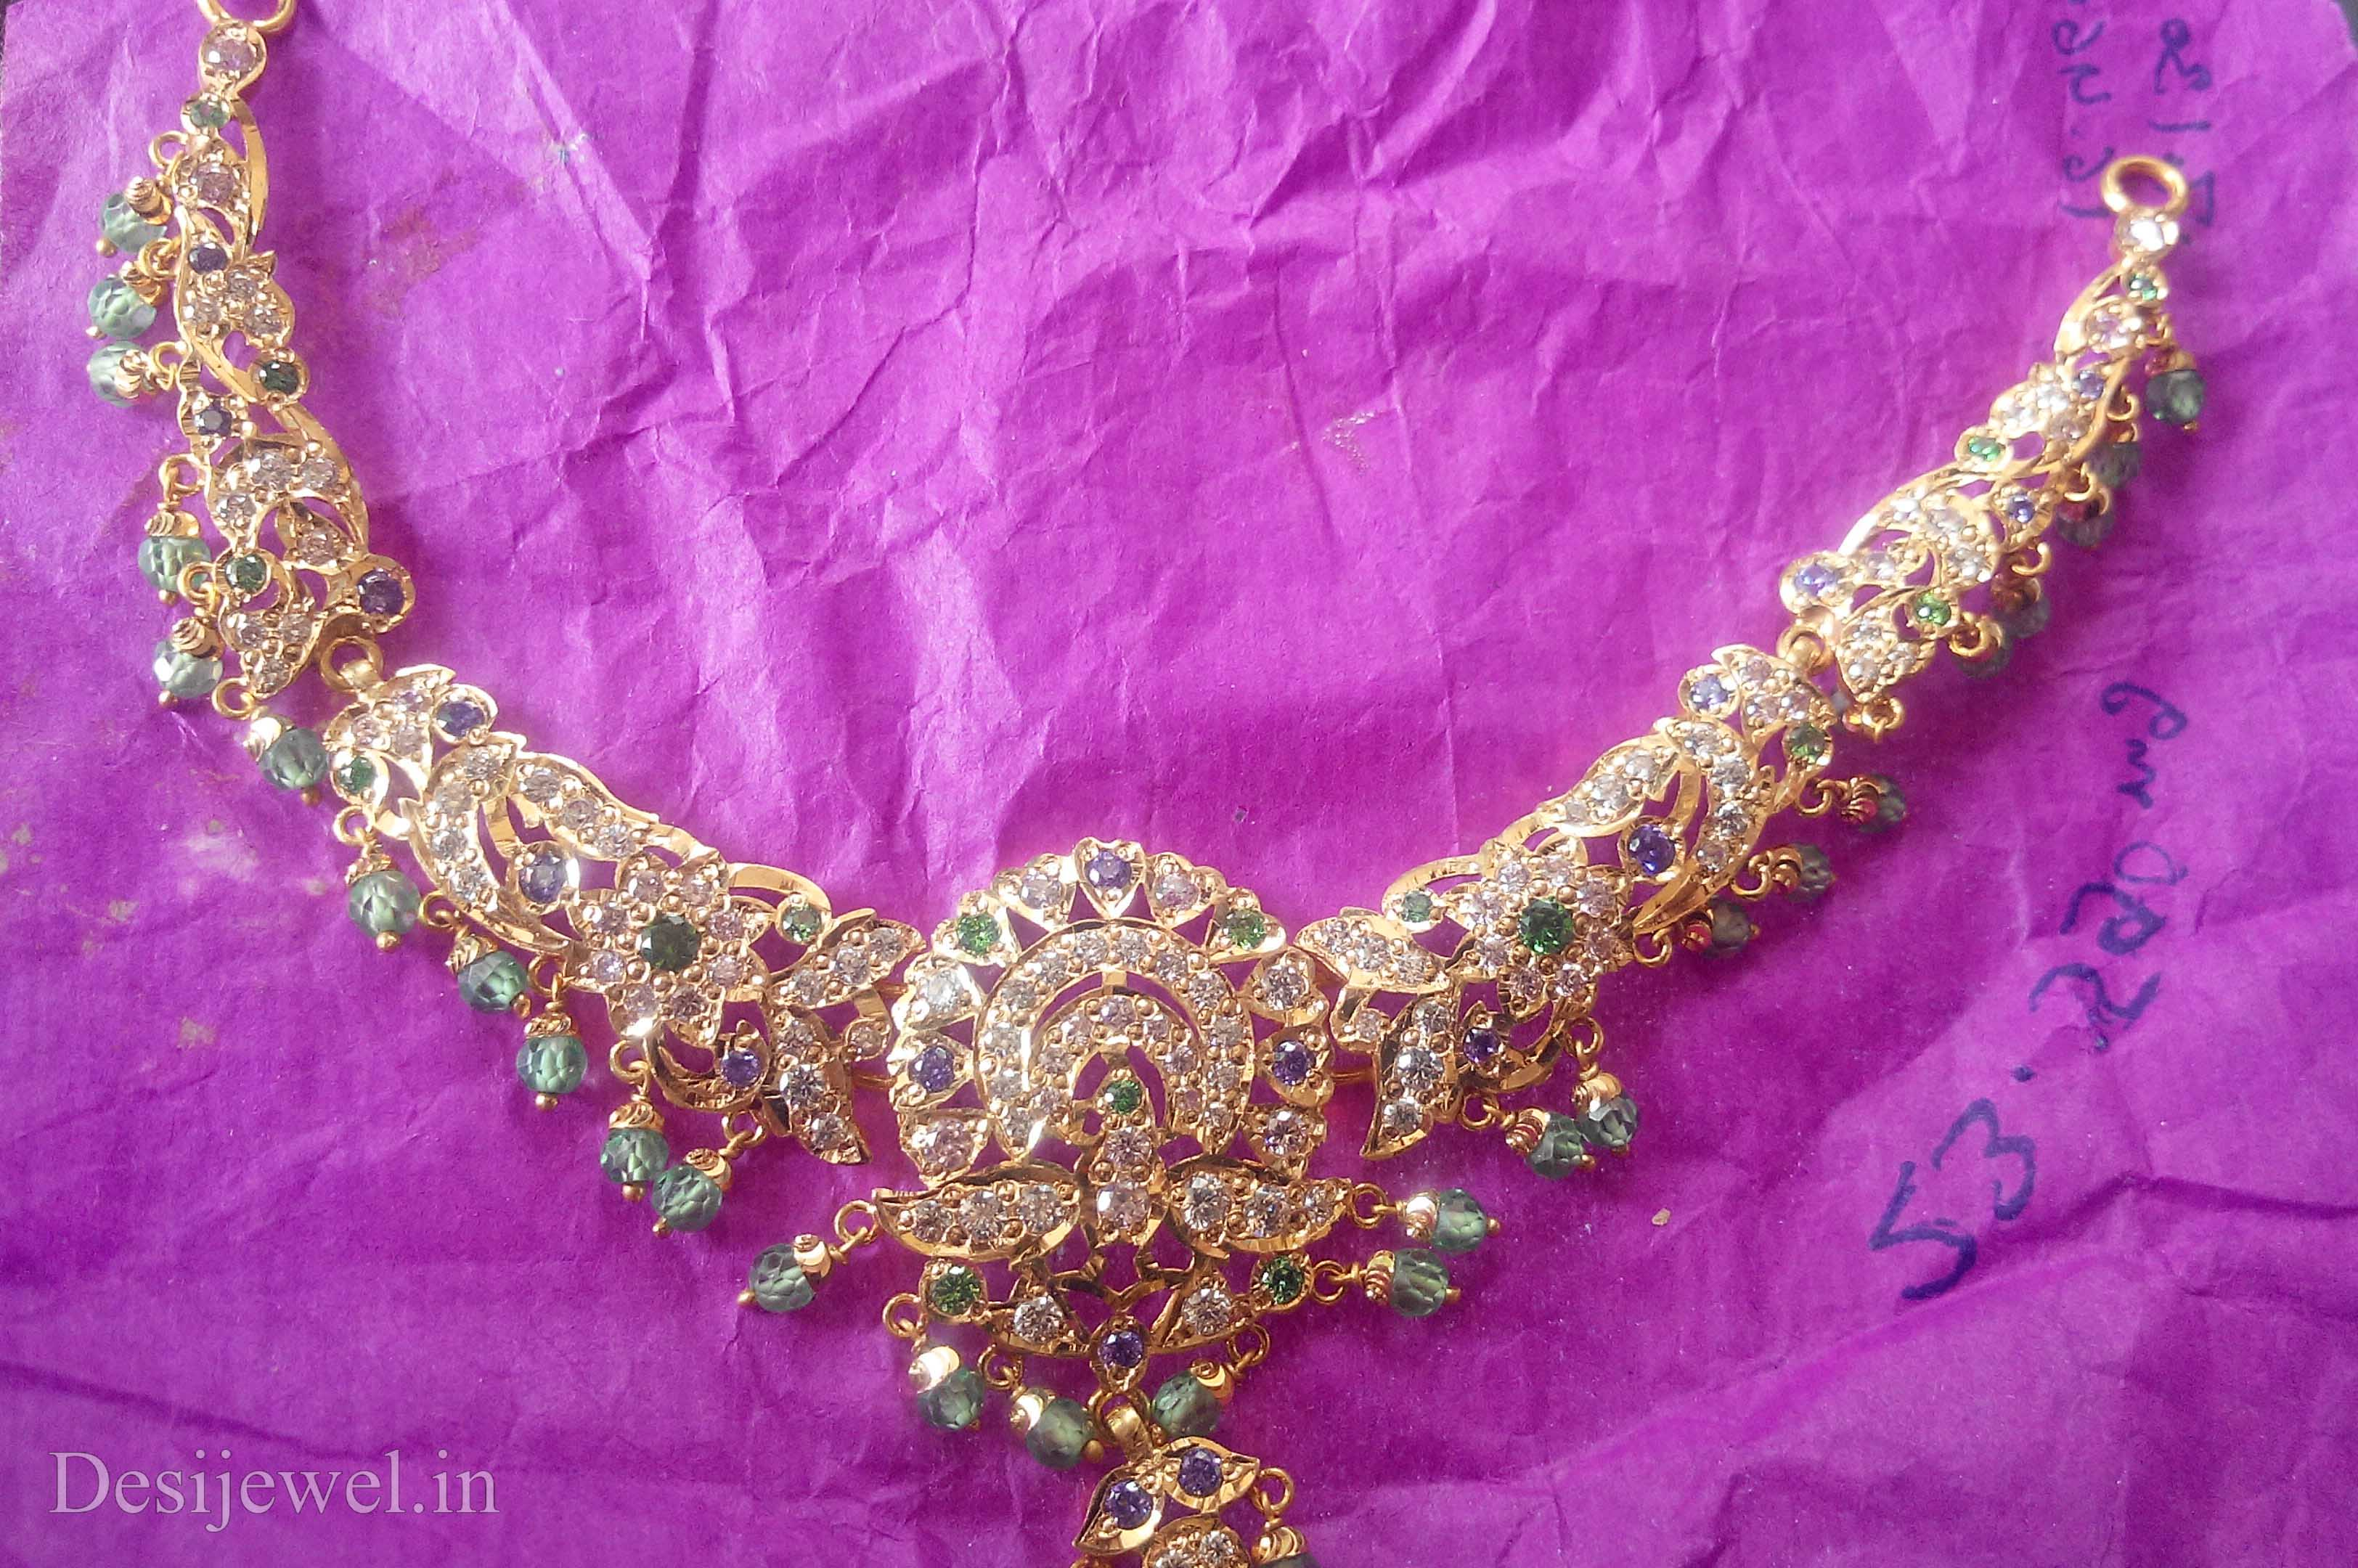 Marwadi Rajasthani Desi gold Necklace And Weight is 25-30 gm